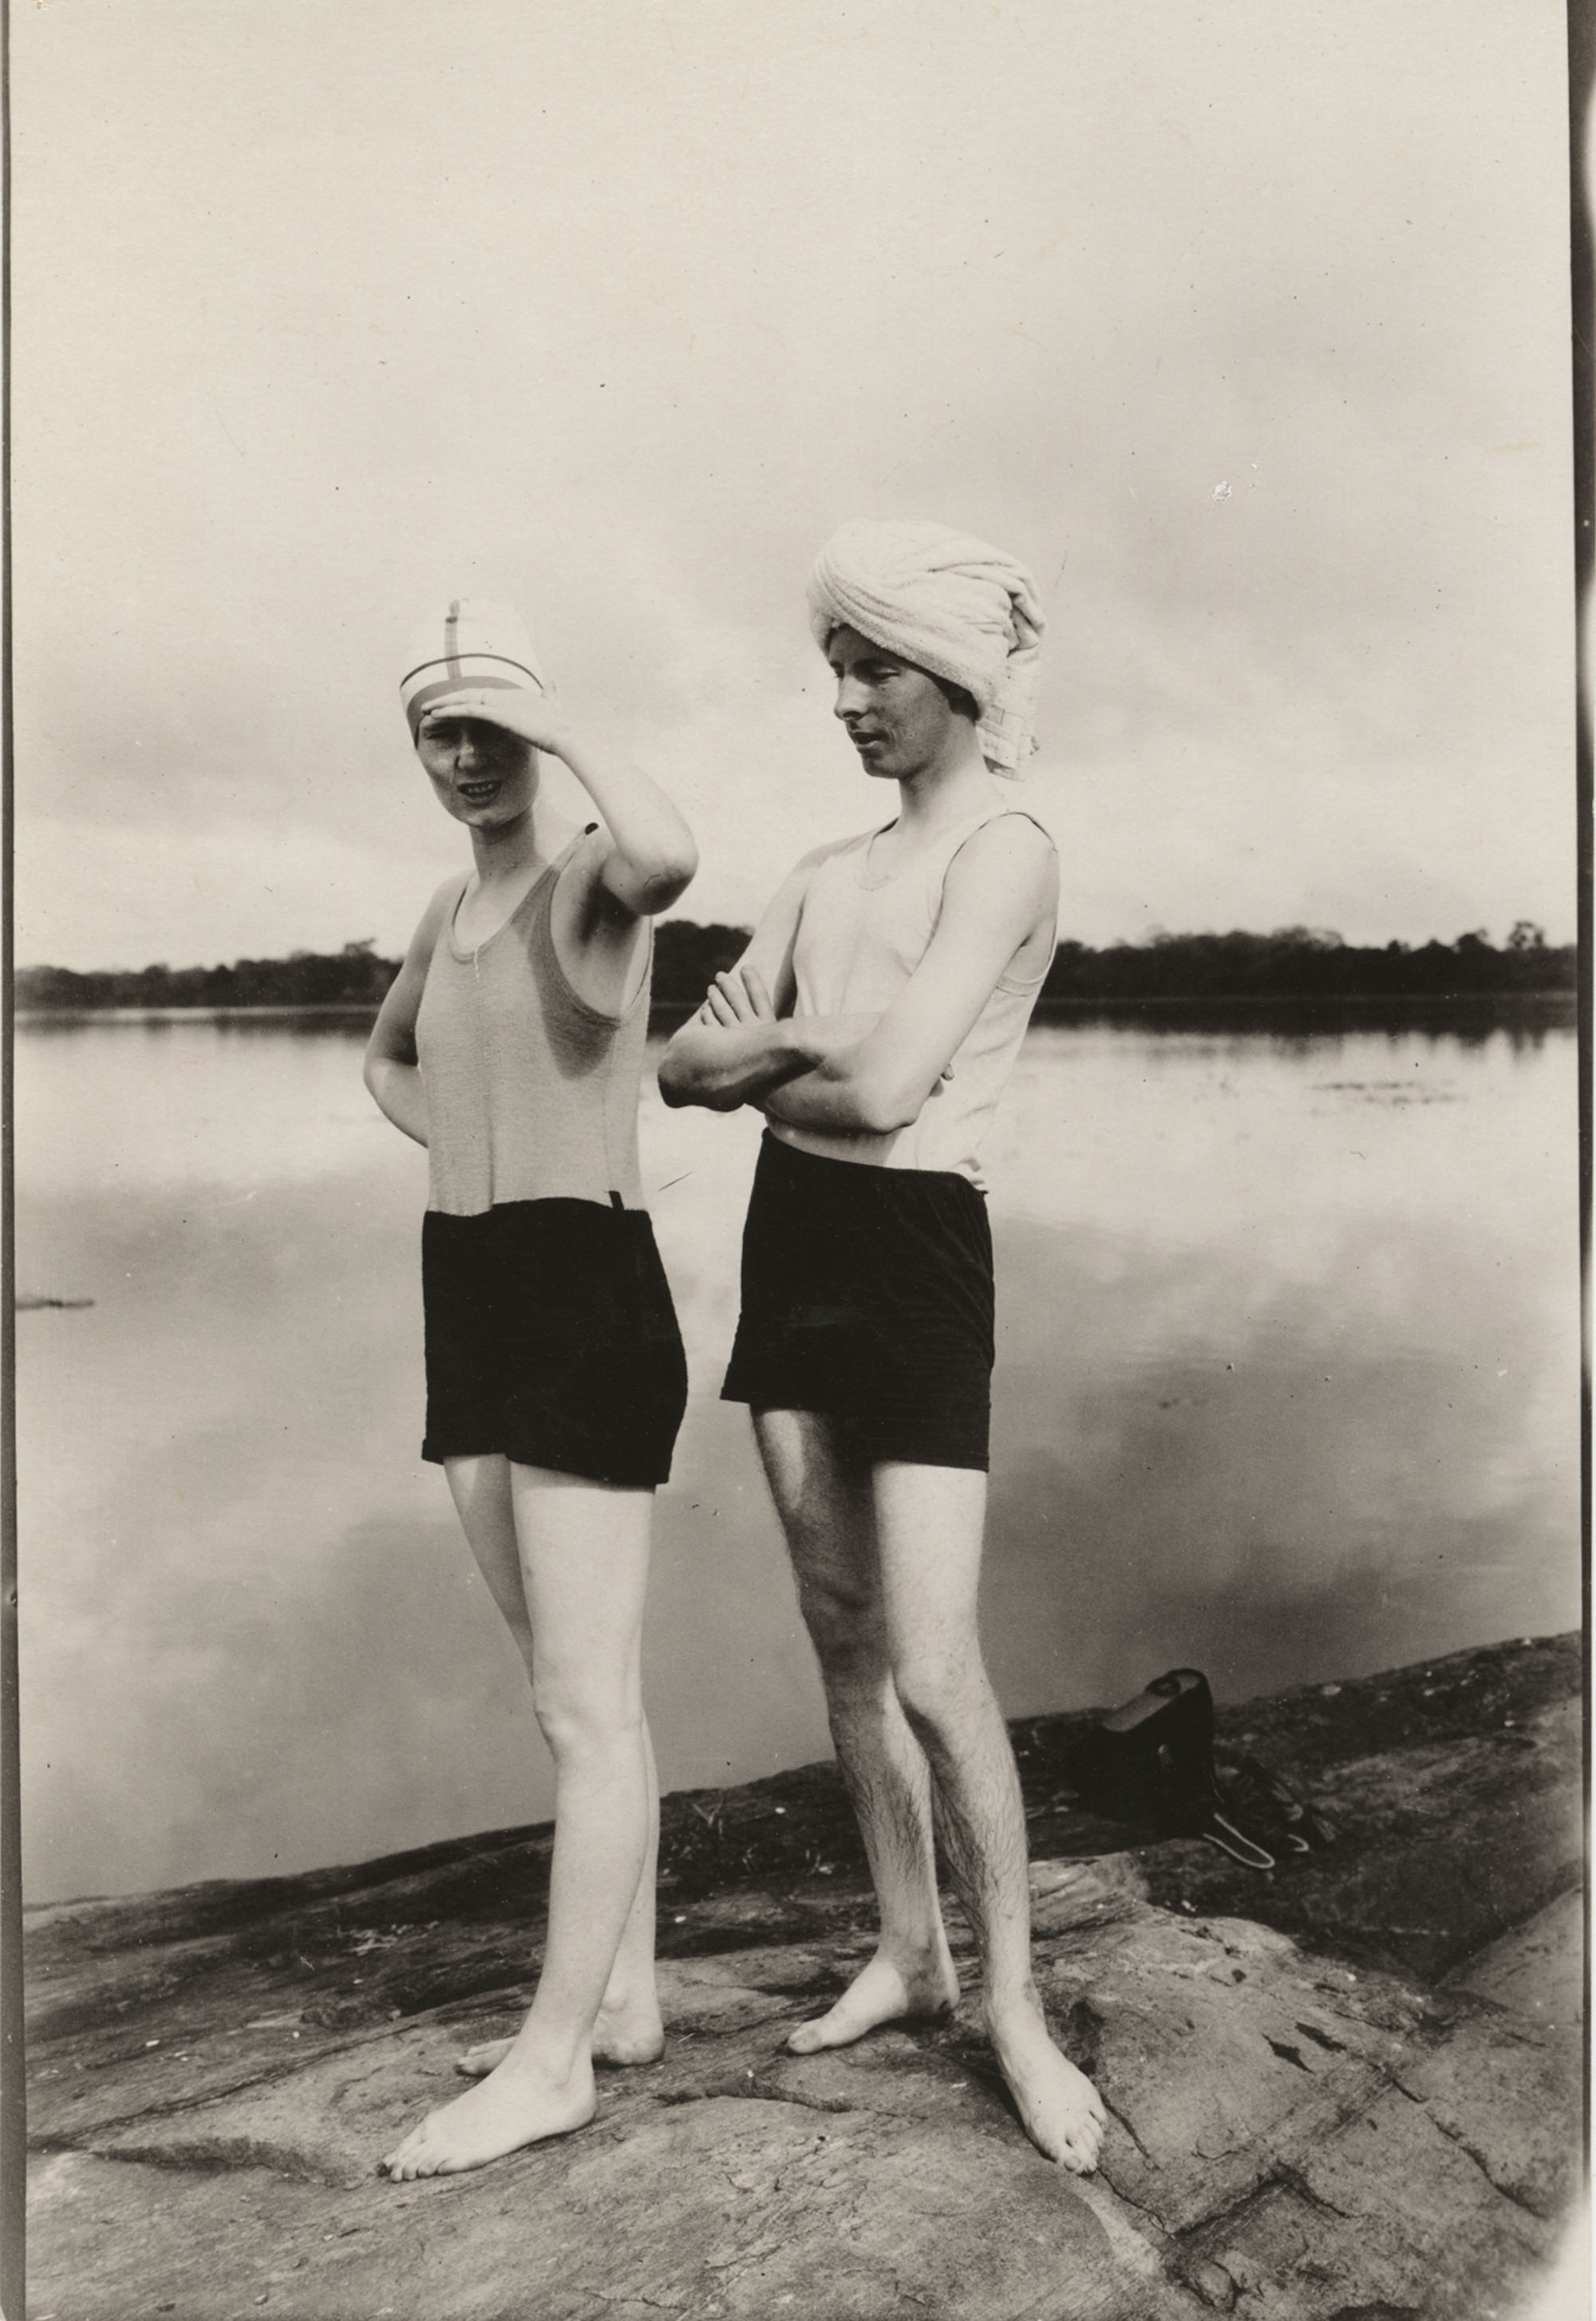 Unidentified couple in swimsuits